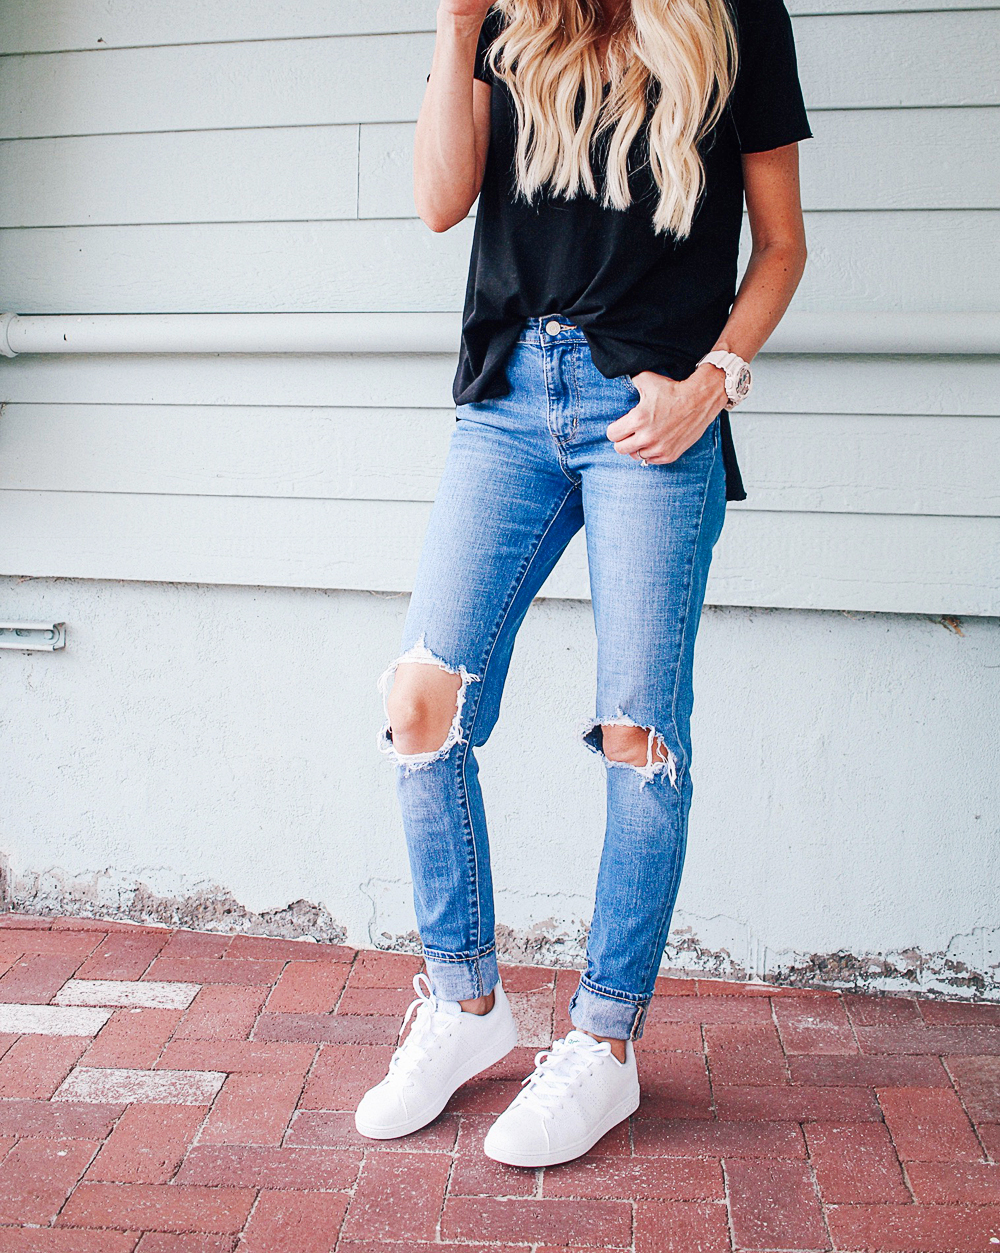 kailee-wright-black-tee-jeans